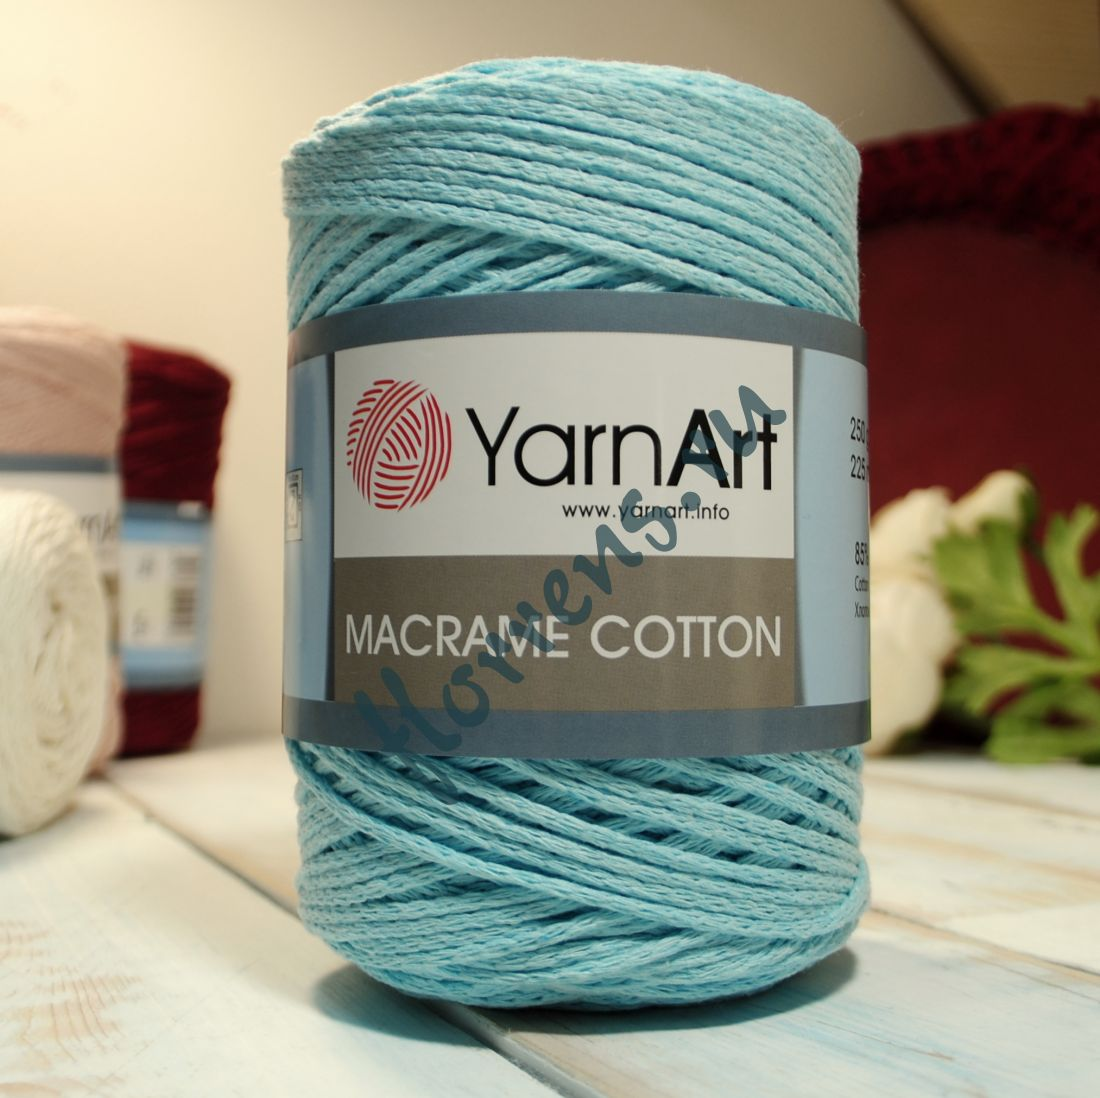 Пряжа Yarnart Macrame cotton / 792 айсберг